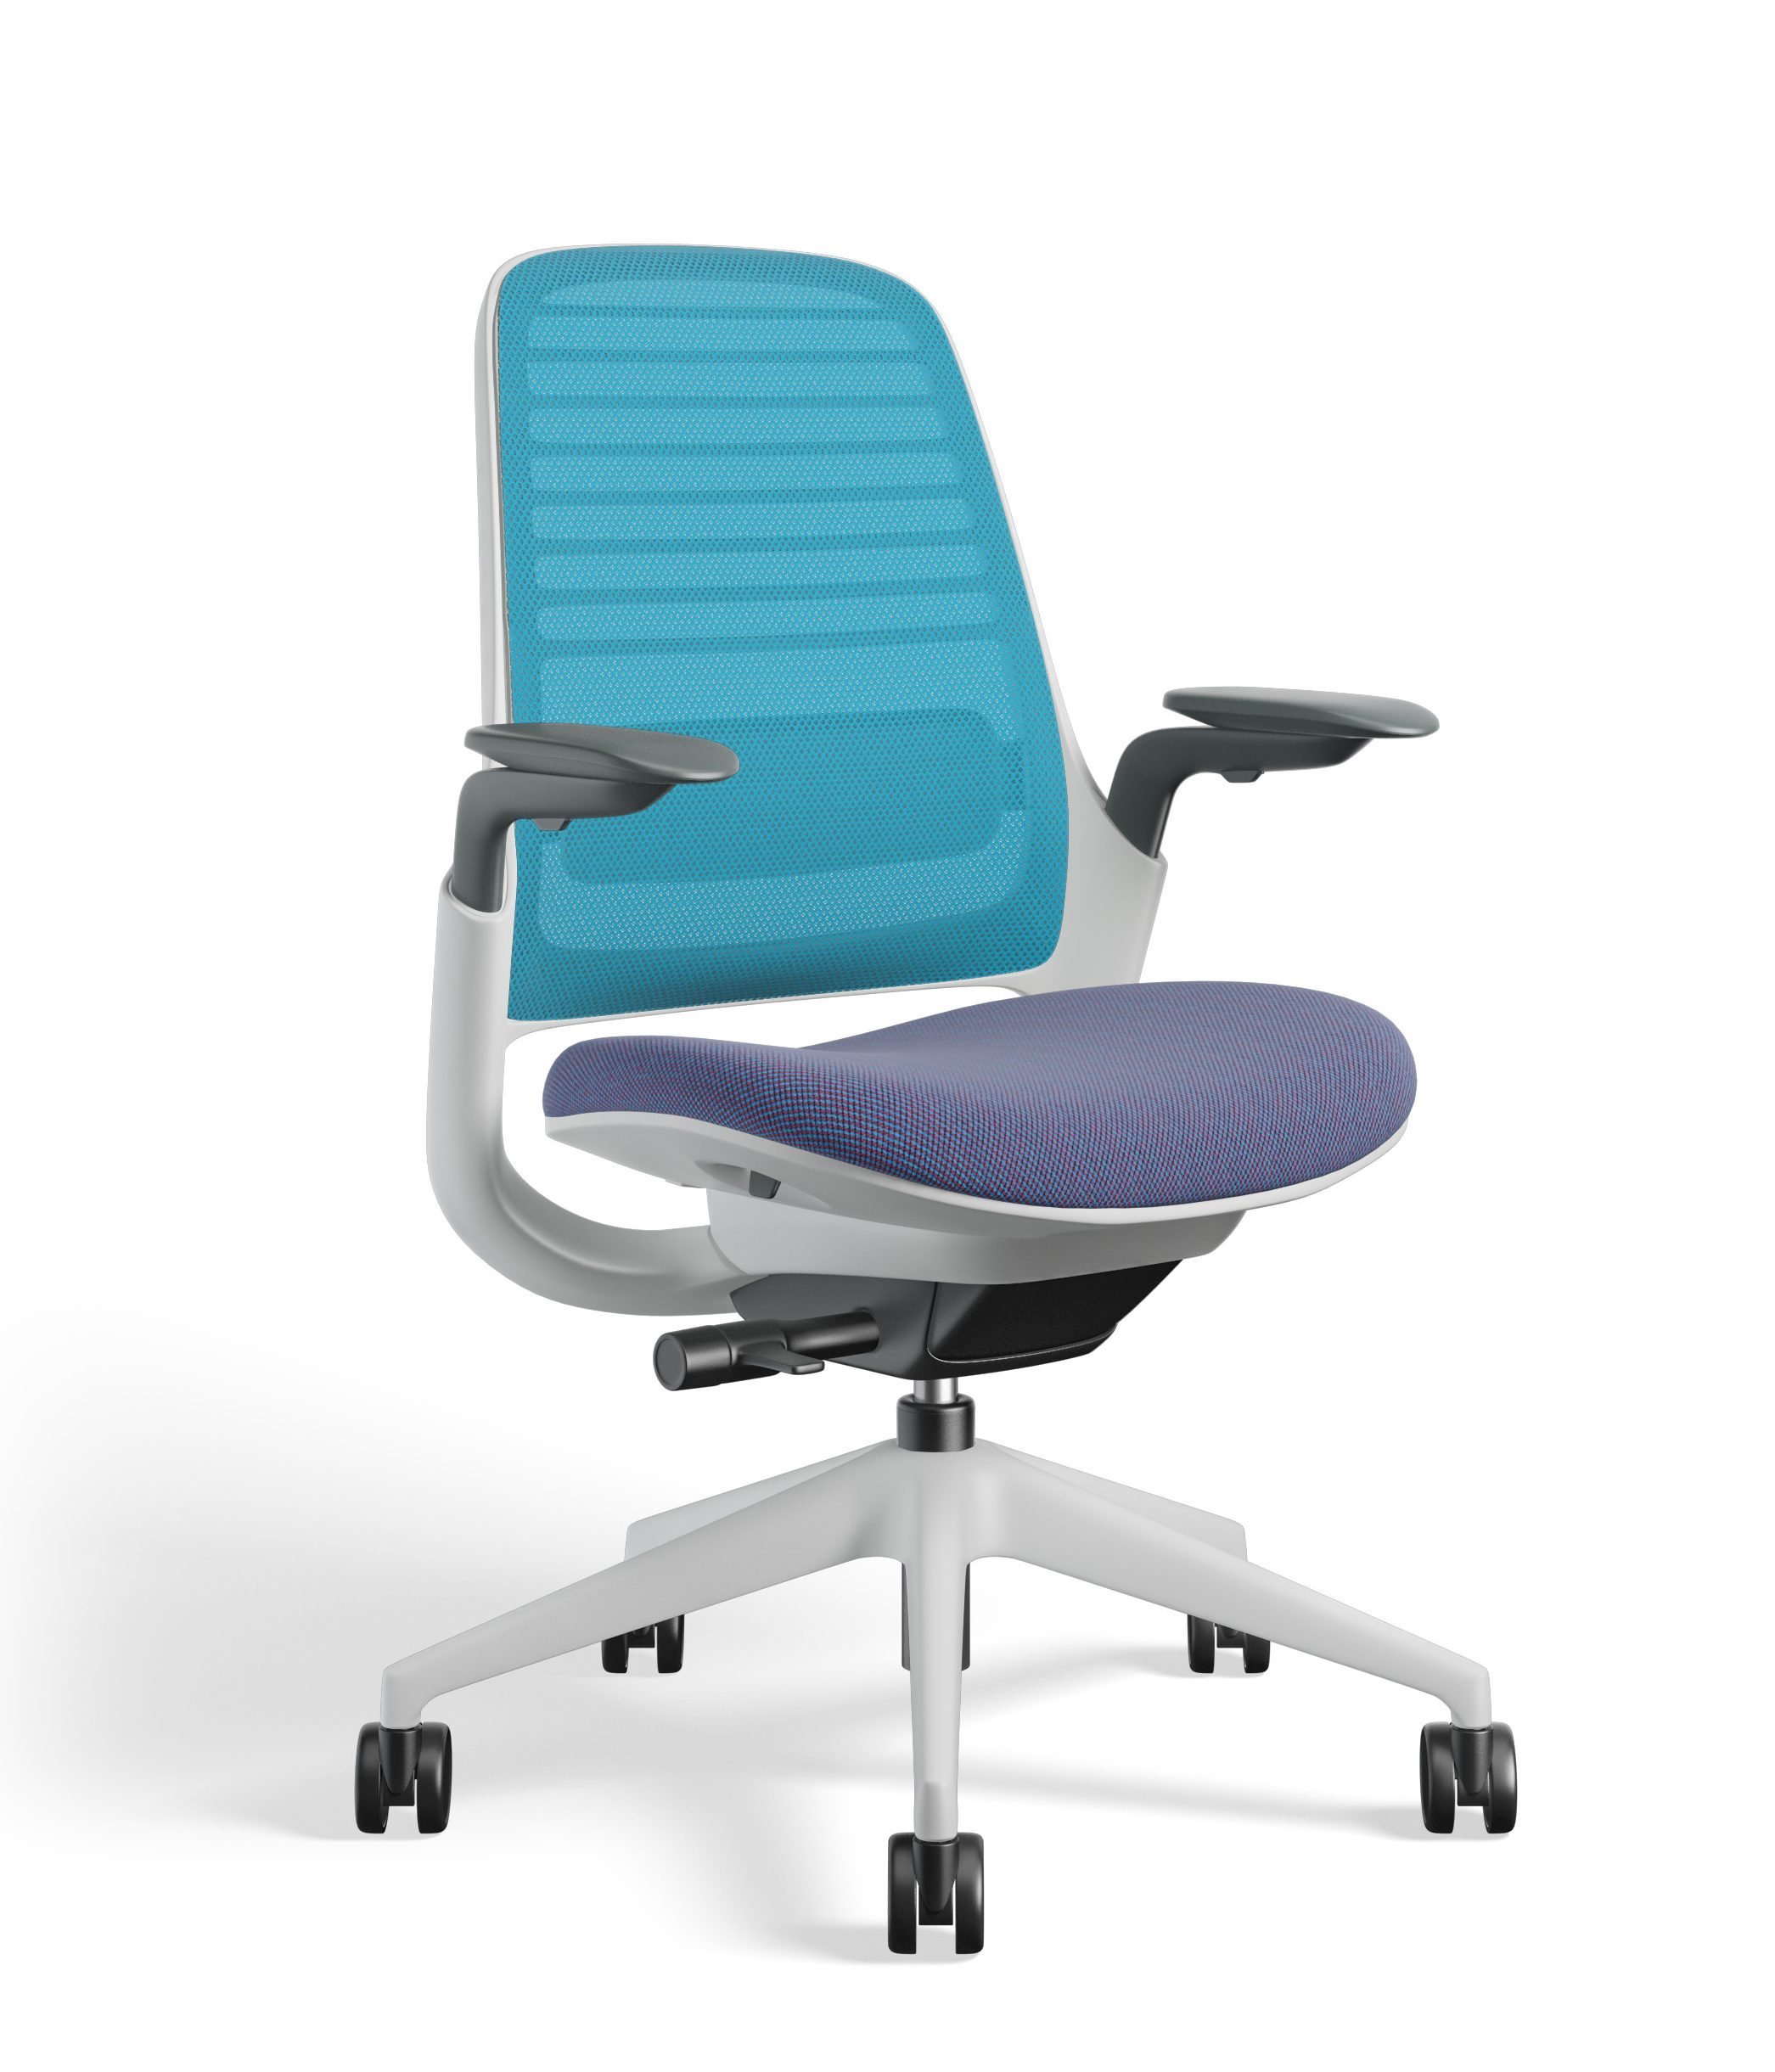 Steelcase Chair Neocon 2017 Steelcase Intros Height Adjustable Desk More